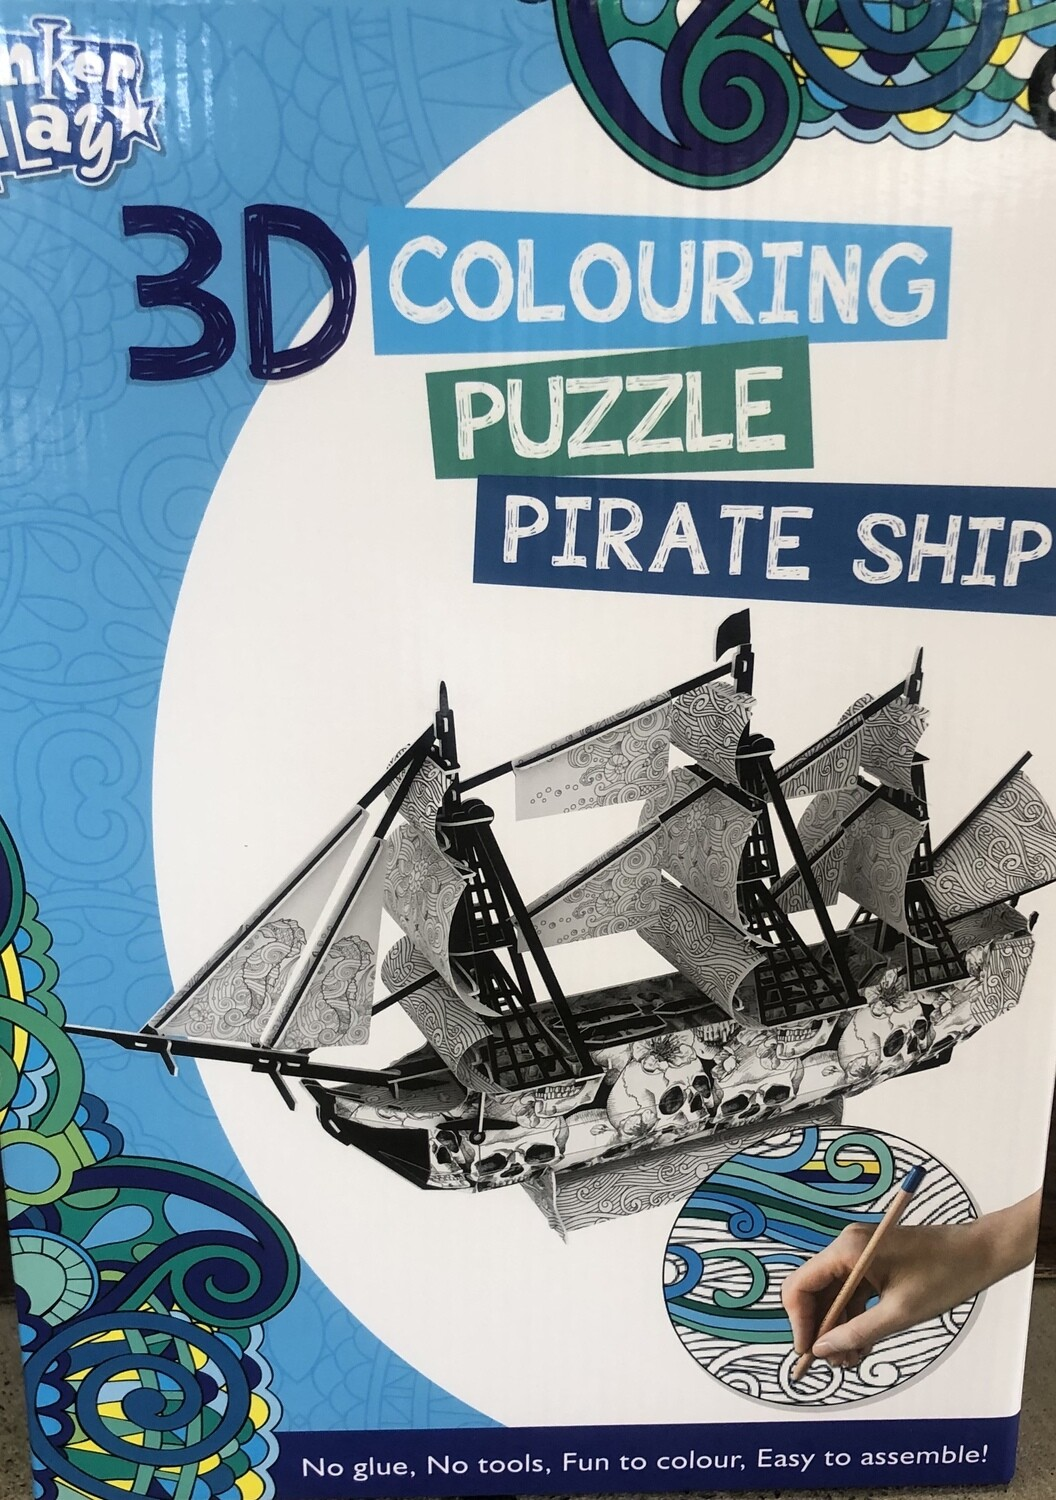 3D Colouring Puzzle Pirate Ship